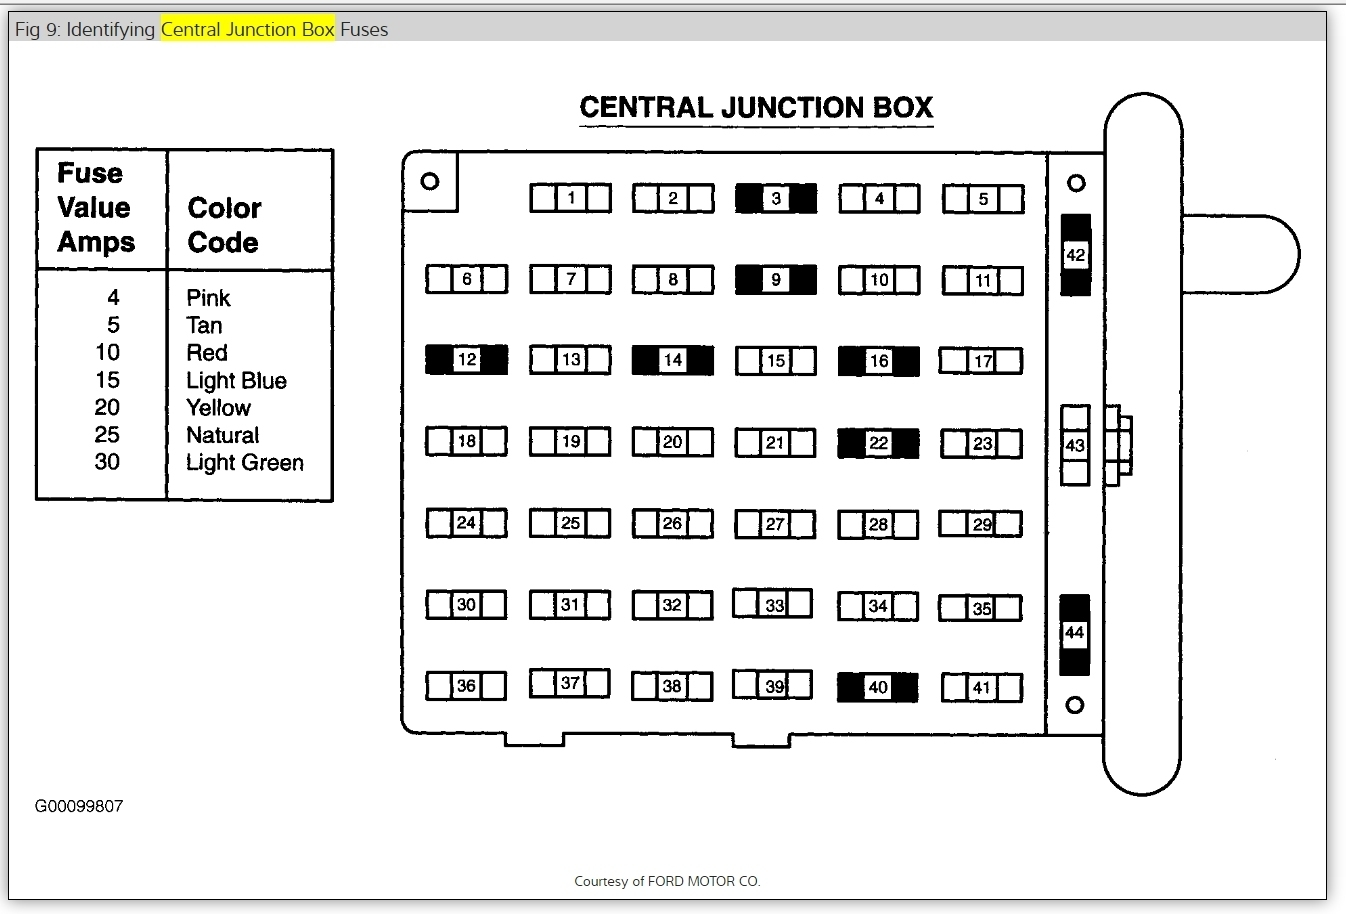 original 1999 ford mustang fuse box layout electrical problem 1999 ford 2004 ford mustang fuse box diagram at bakdesigns.co